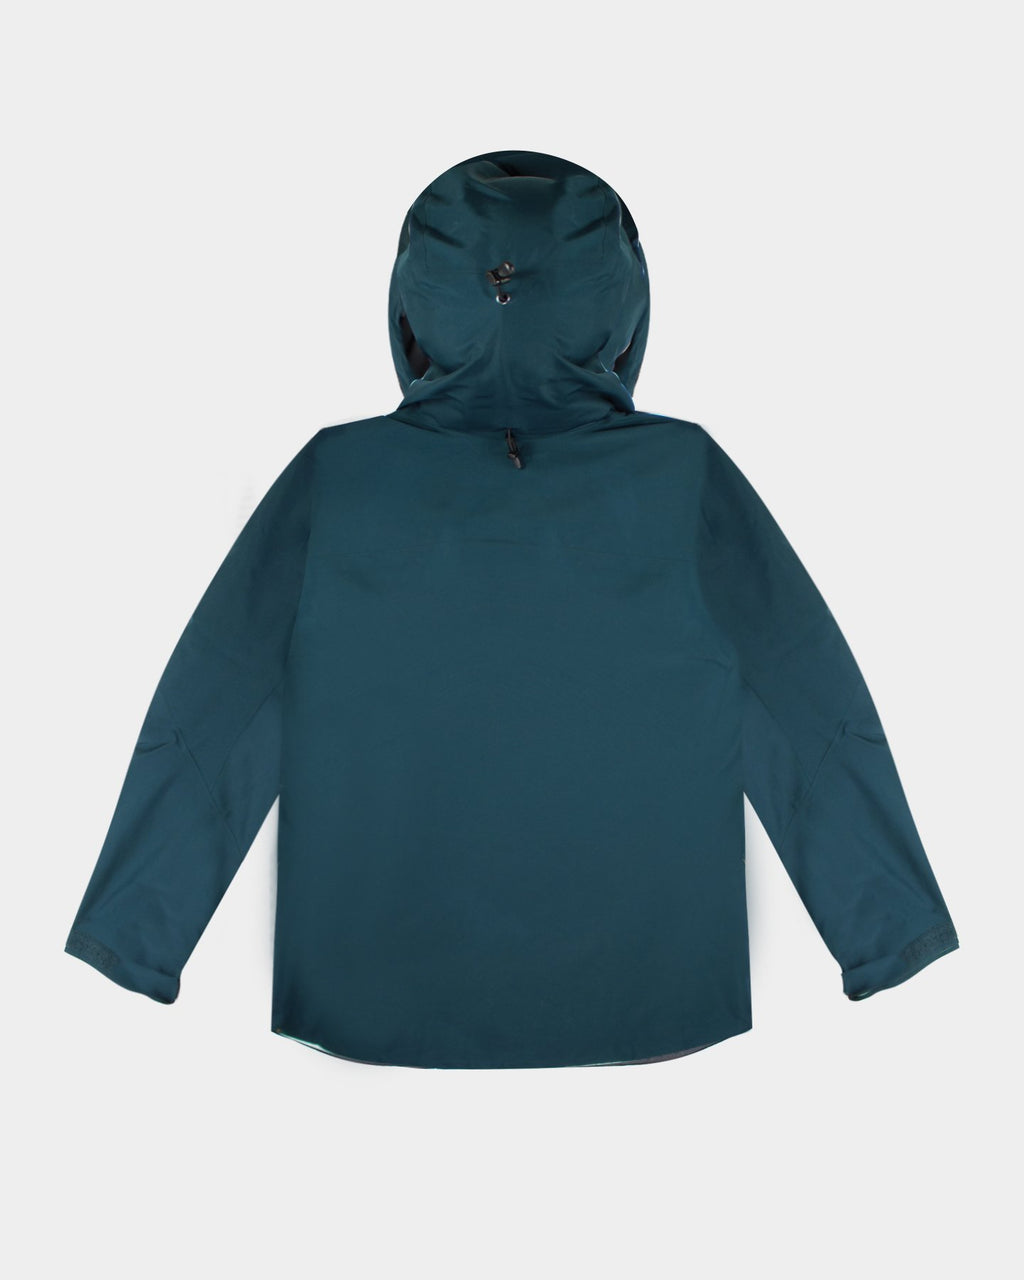 Green Alpha SV Jacket